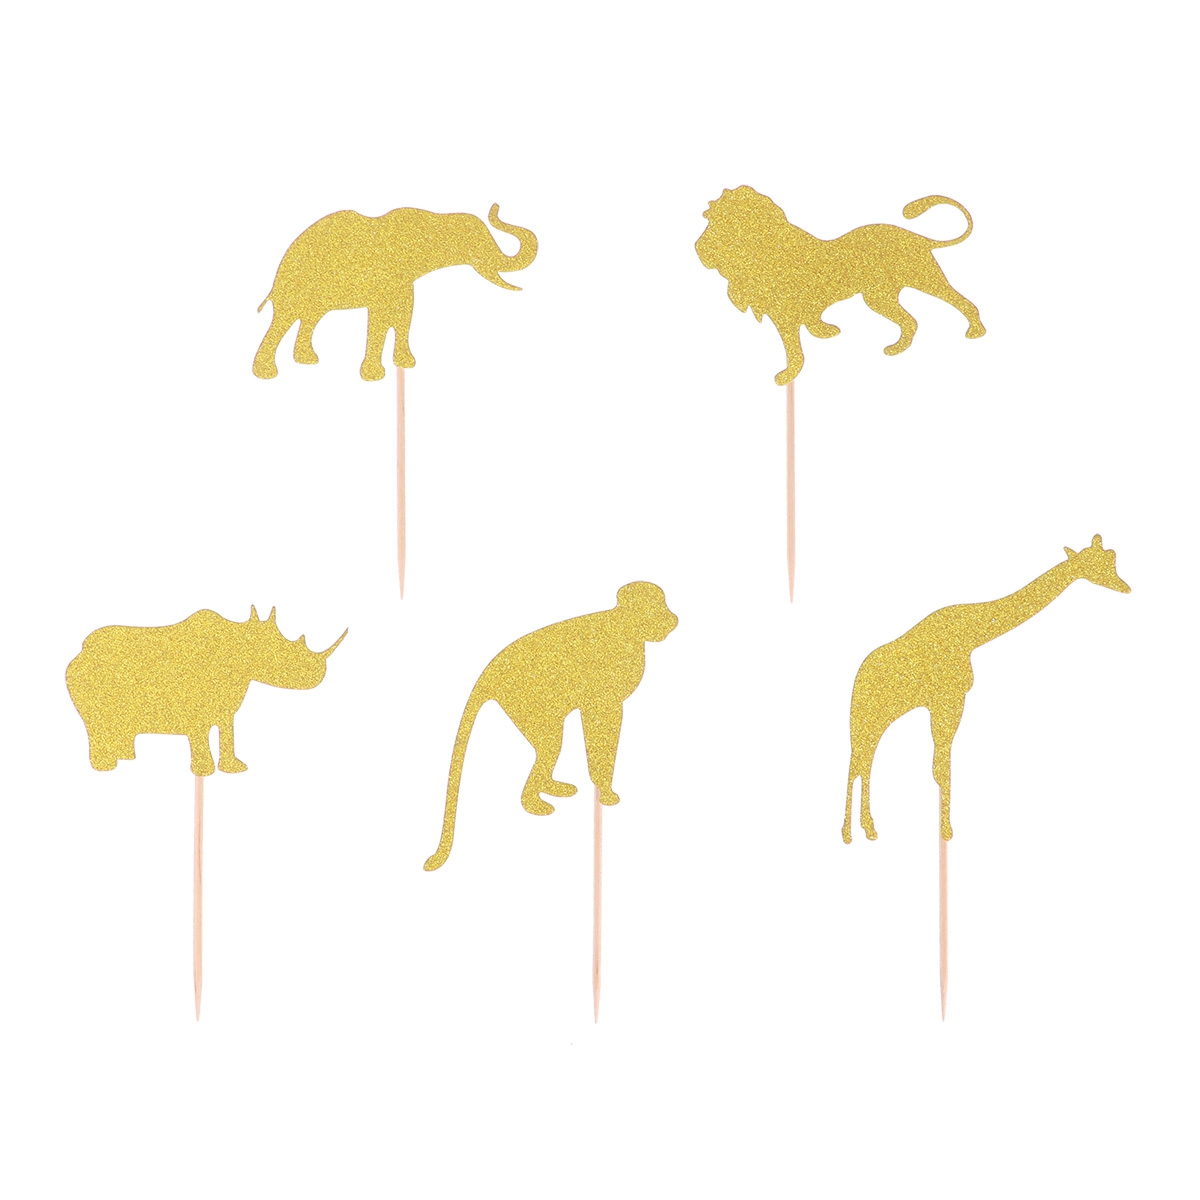 Image 2 - 10pcs Cake Topper Glitter Jungle Animals Golden Cupcake Toppers Dessert Topper Insert Card Fruit Topper For Birthday-in Cake Decorating Supplies from Home & Garden